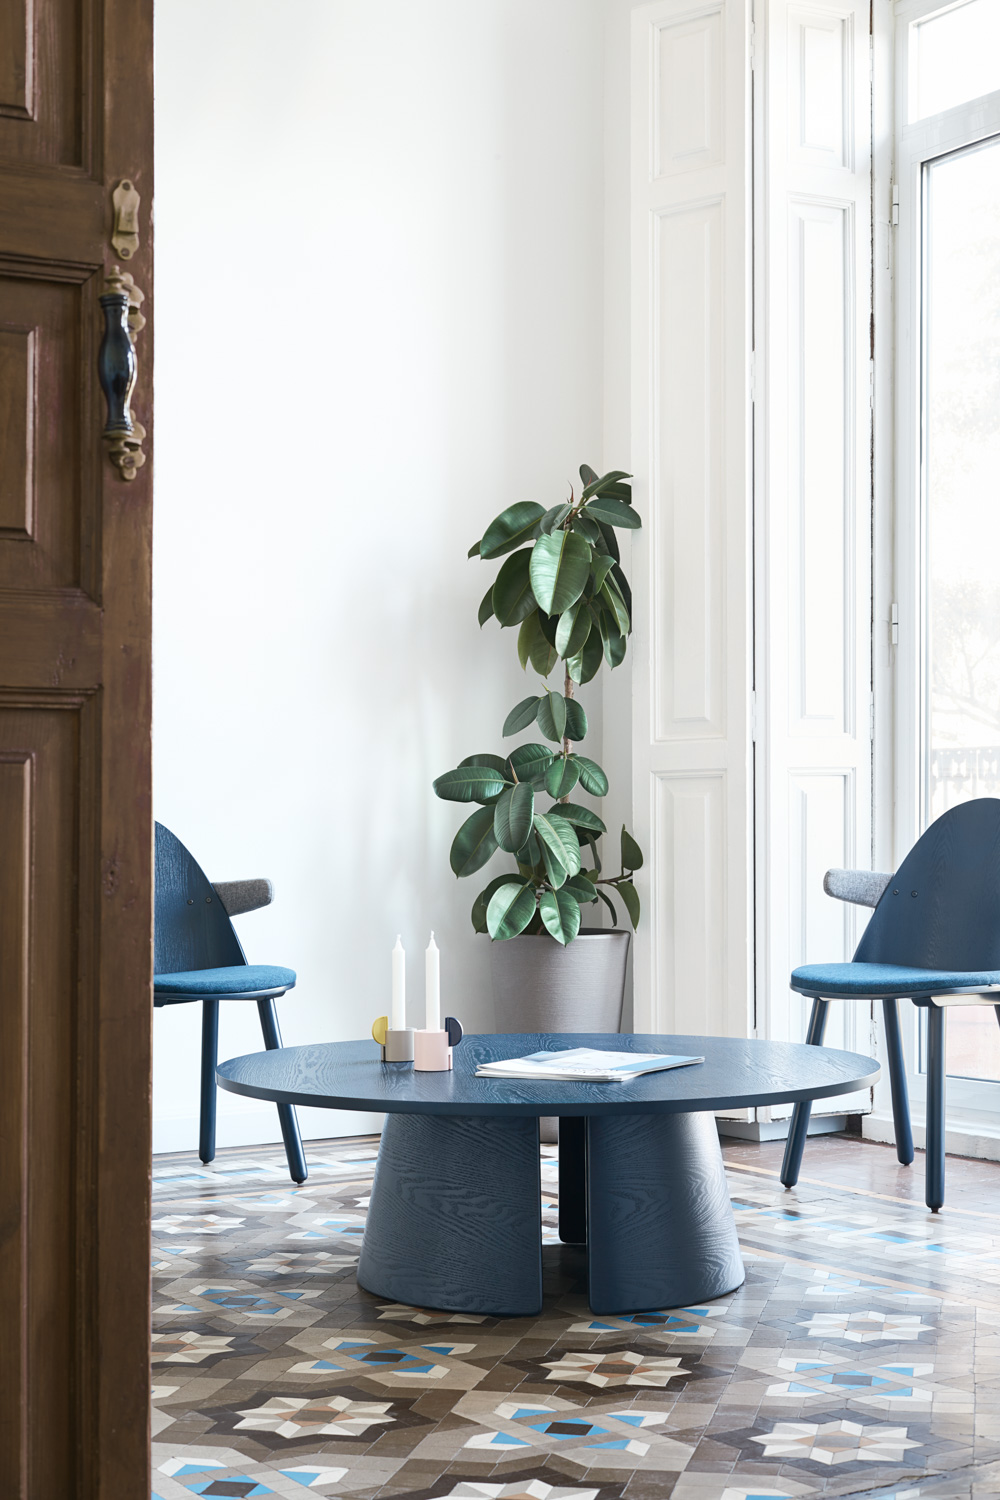 Teulat_Cep_Coffee-table_Blue